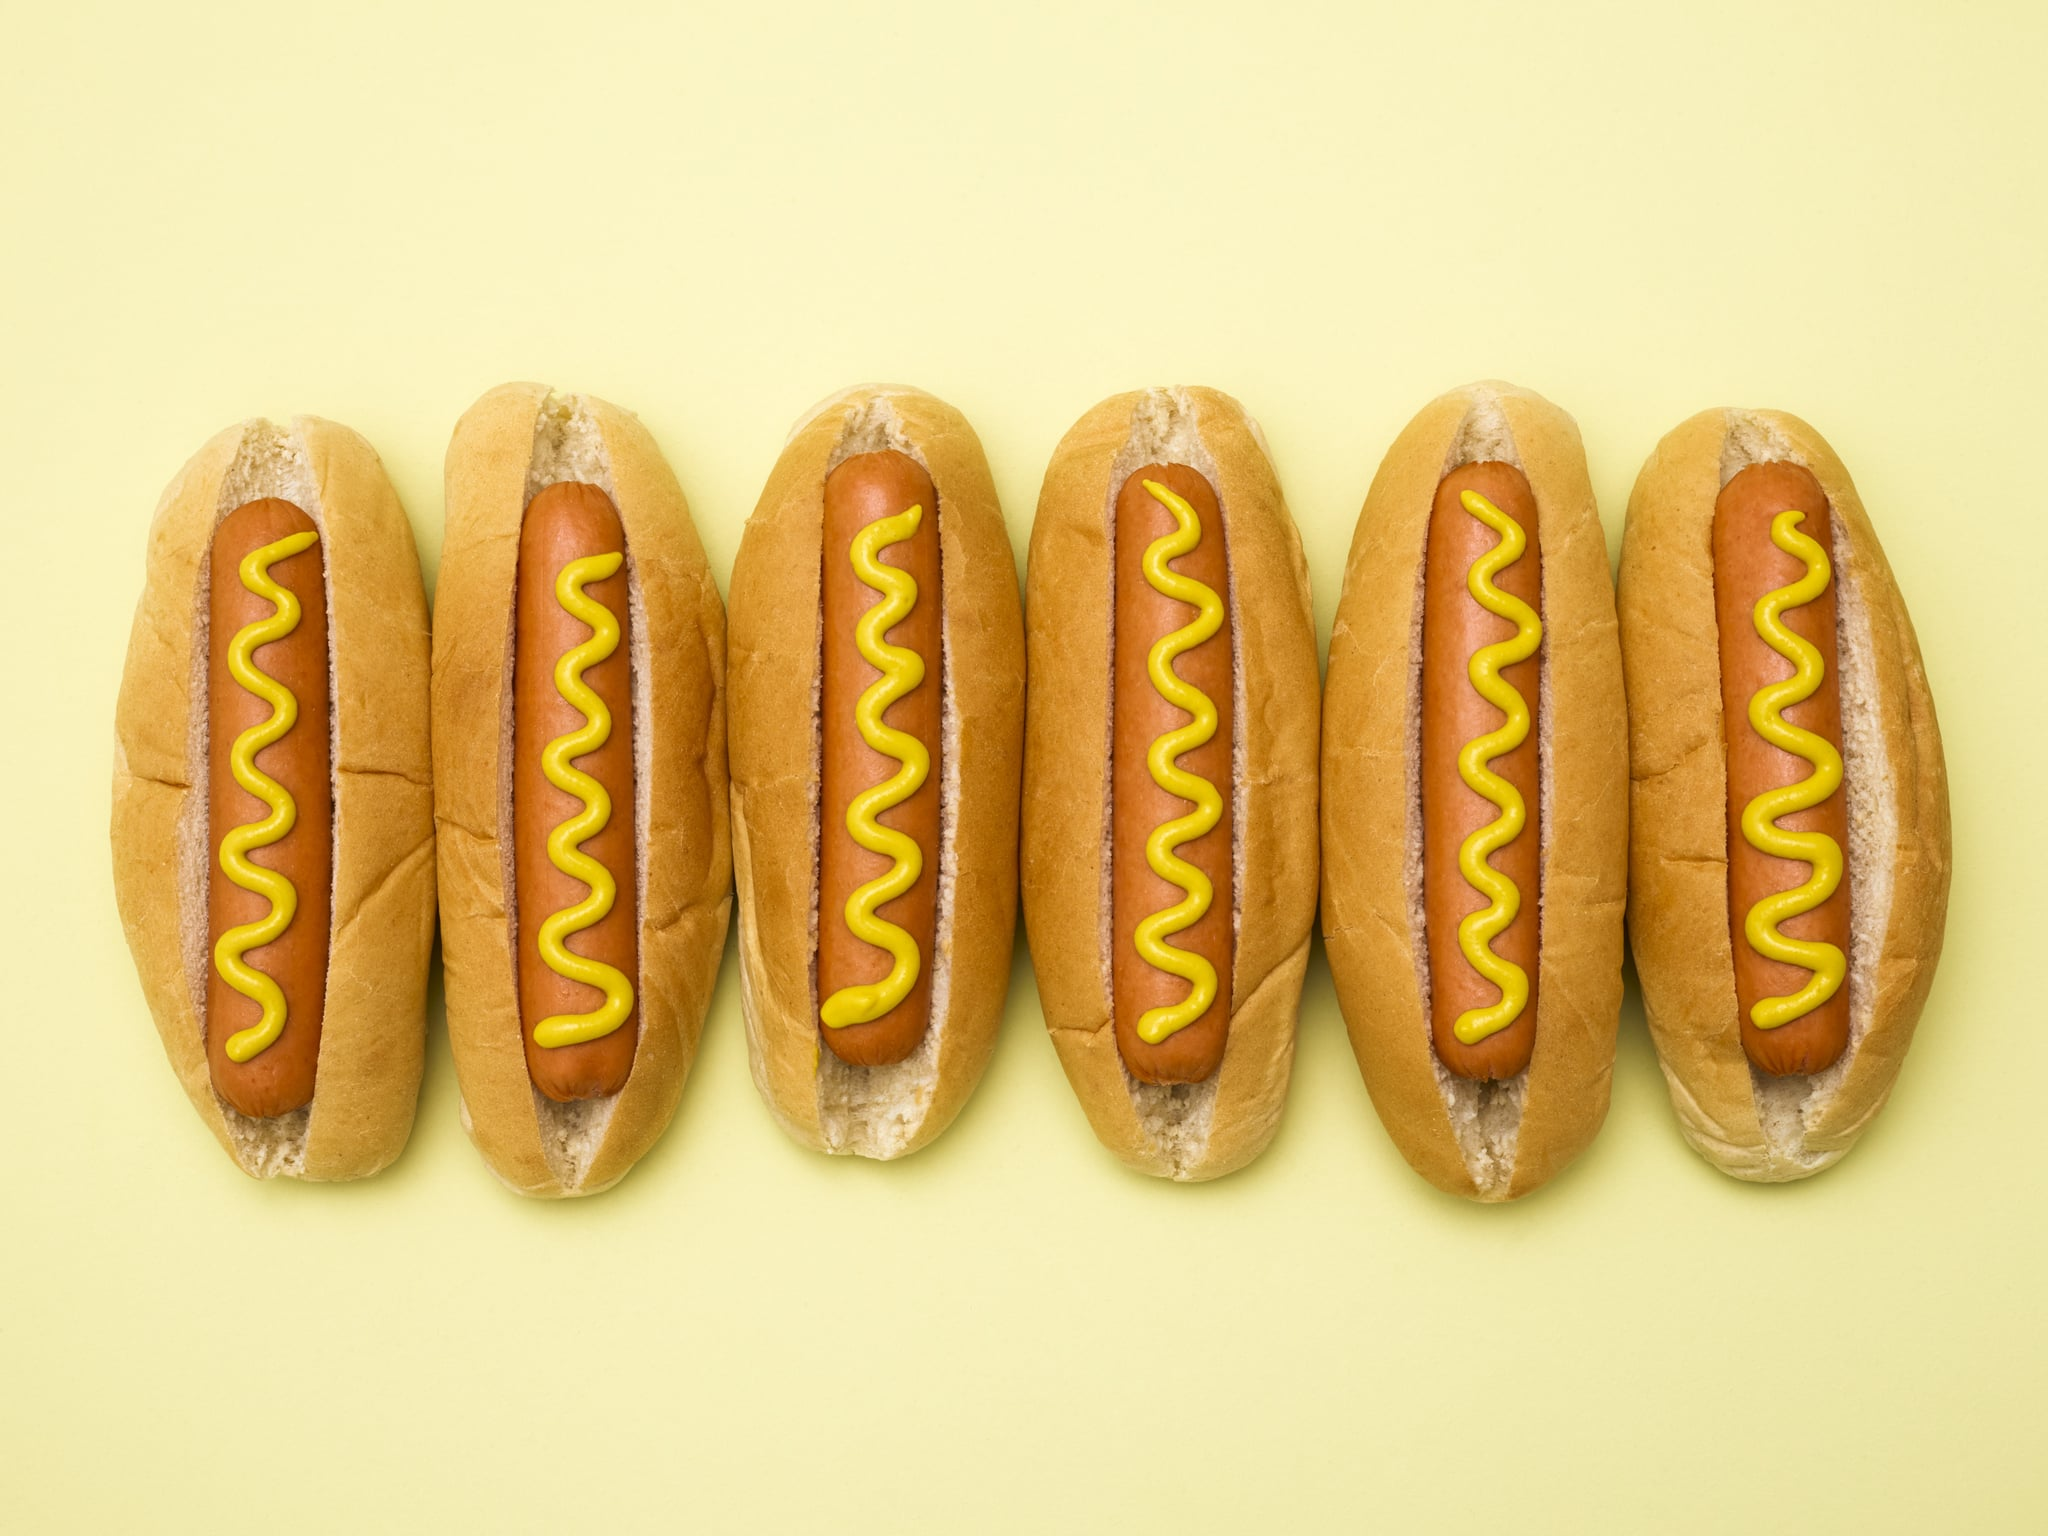 Hot dogs against a plain background.